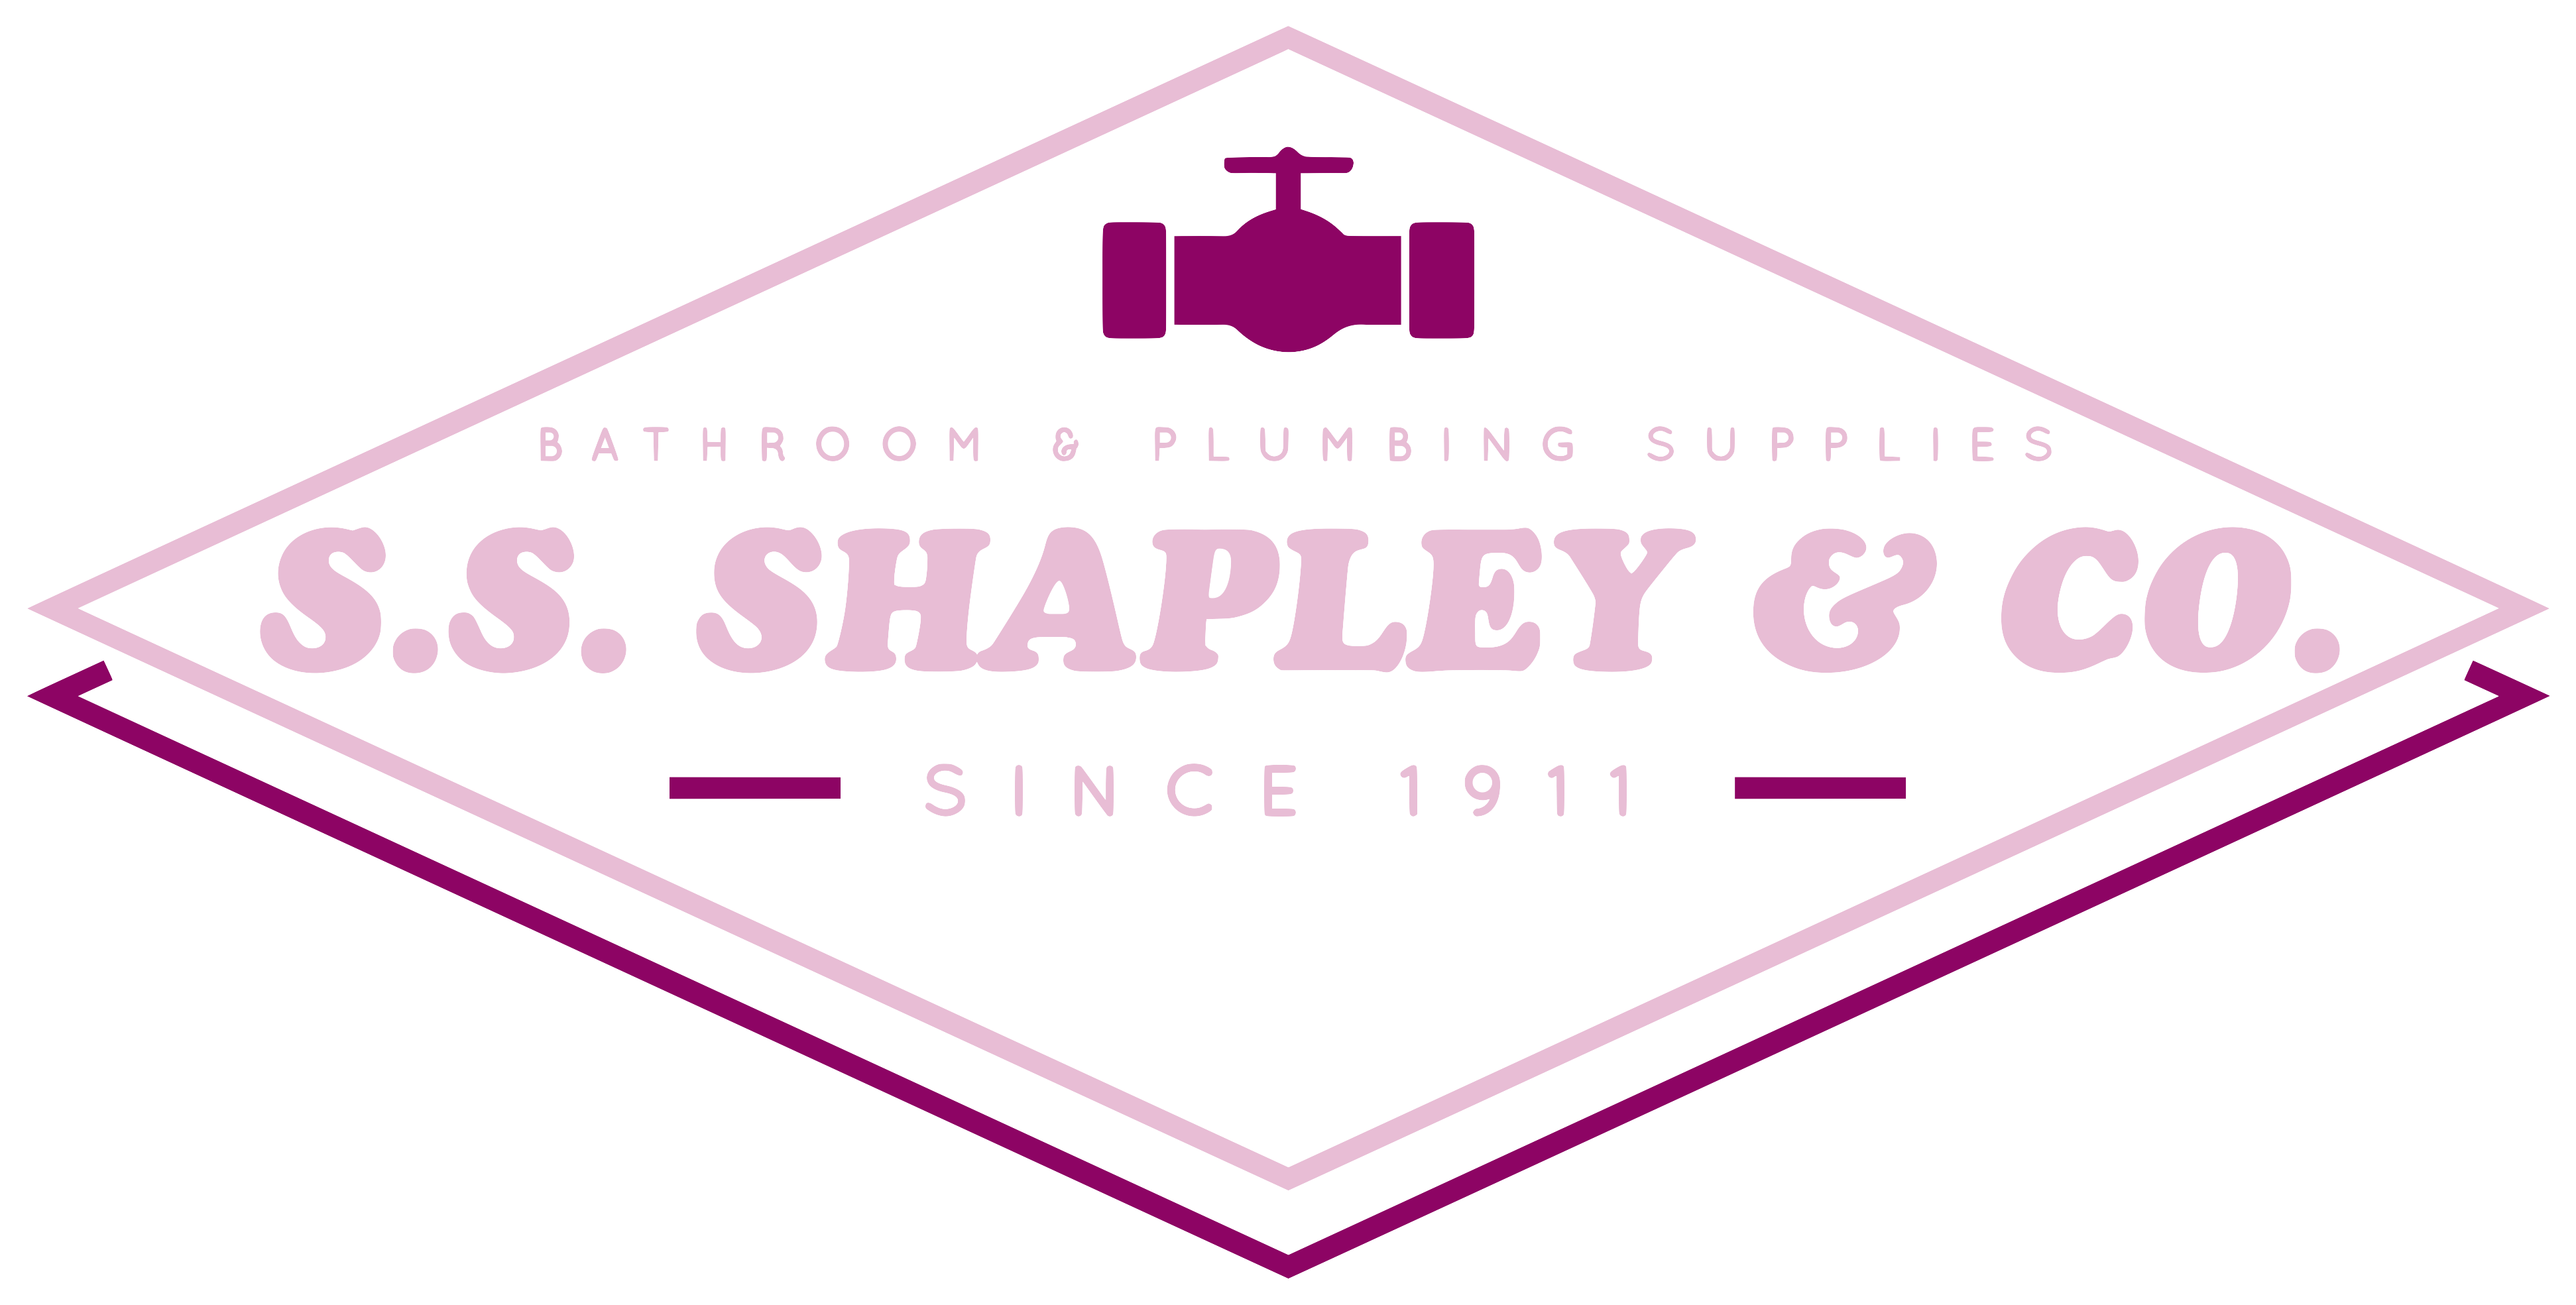 S.S.Shapley & Co Ltd Plumbing Supplies